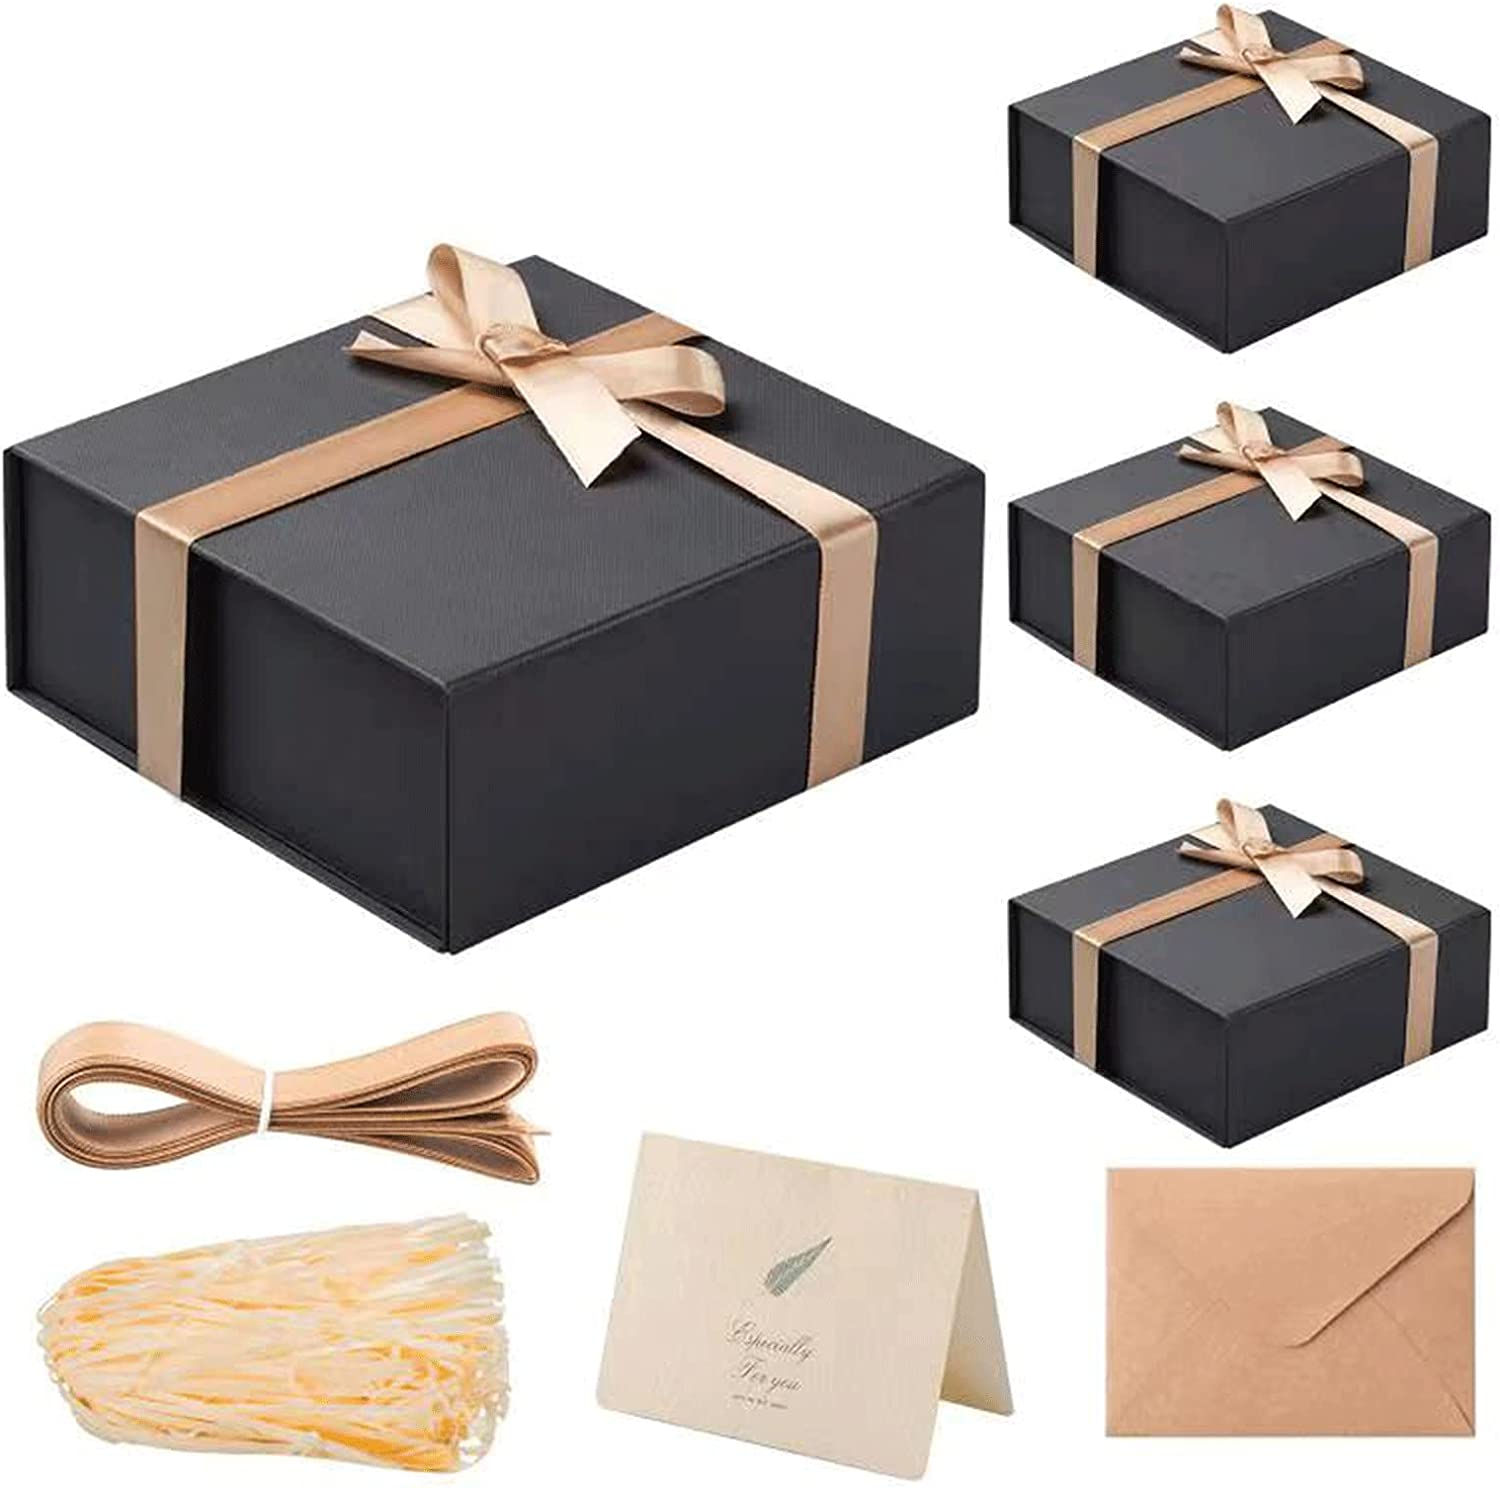 Buy LIFELUM Gift Box with Magnetic Lid 4 Pack 8 x 7 x 3 Black Large Gift Box  Bridesmaid Proposal Gift Boxes for Presents with Lids Contains Card,  Ribbon, Shredded Paper Filler